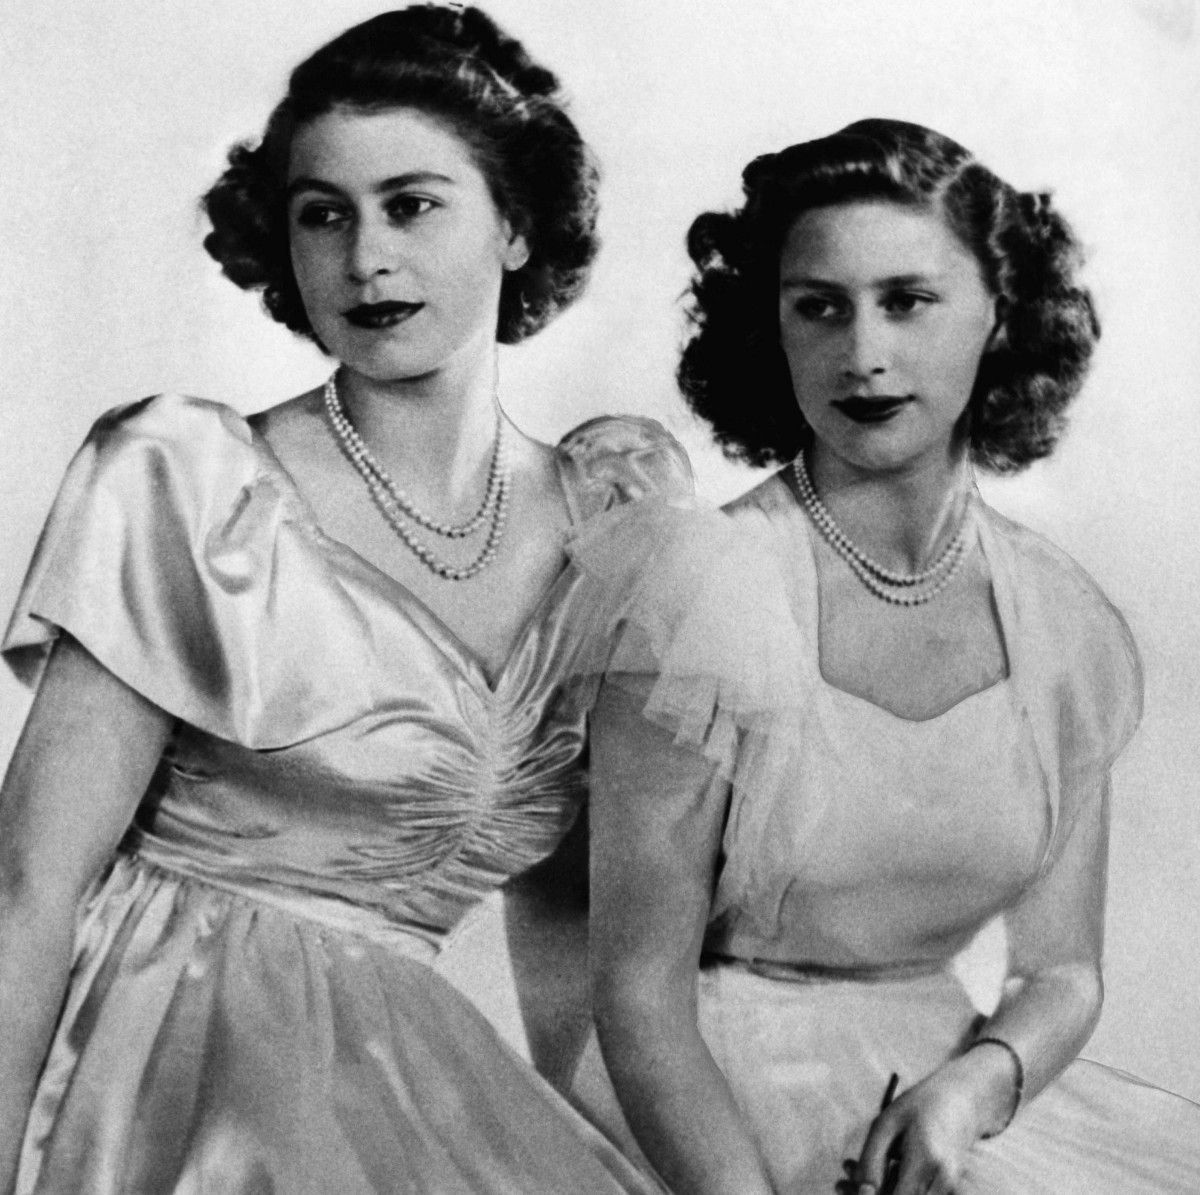 Elizabeth (left) and Margaret (right) went out on VE Day in 1945. Or so it is claimed in the new movie.